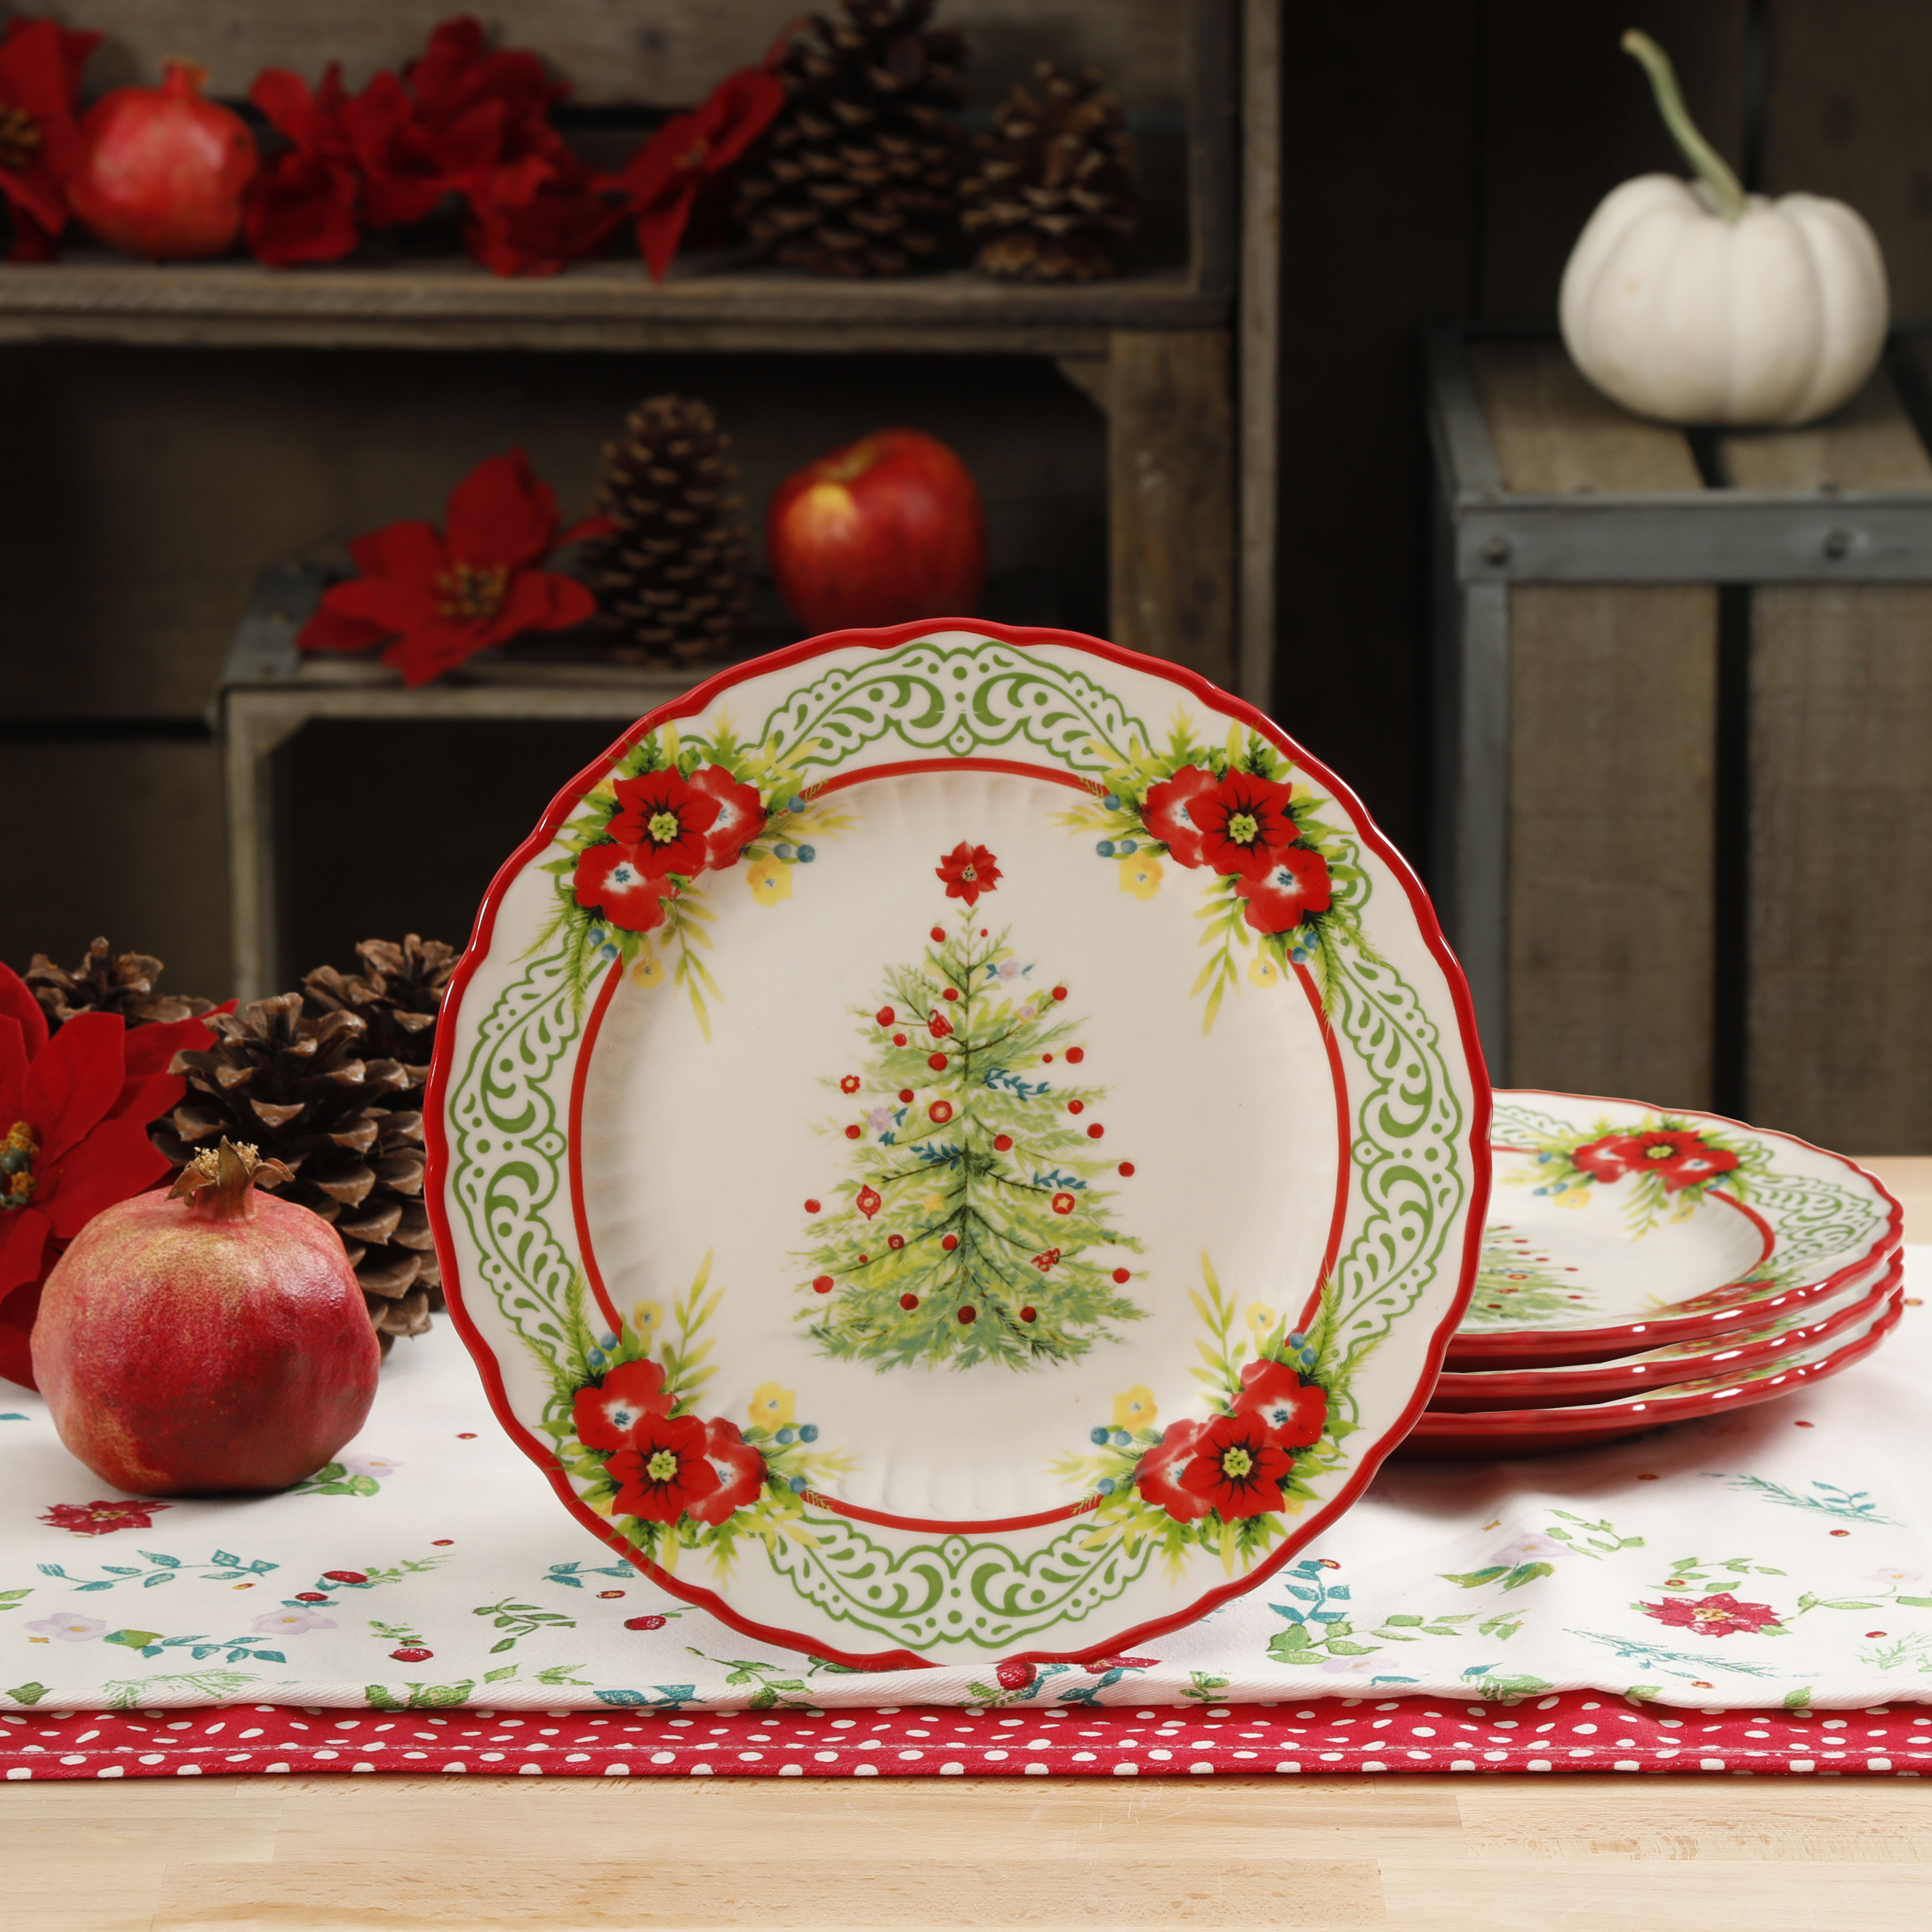 The Pioneer Woman Garland 8.8-Inch Salad Plates, Set of 4